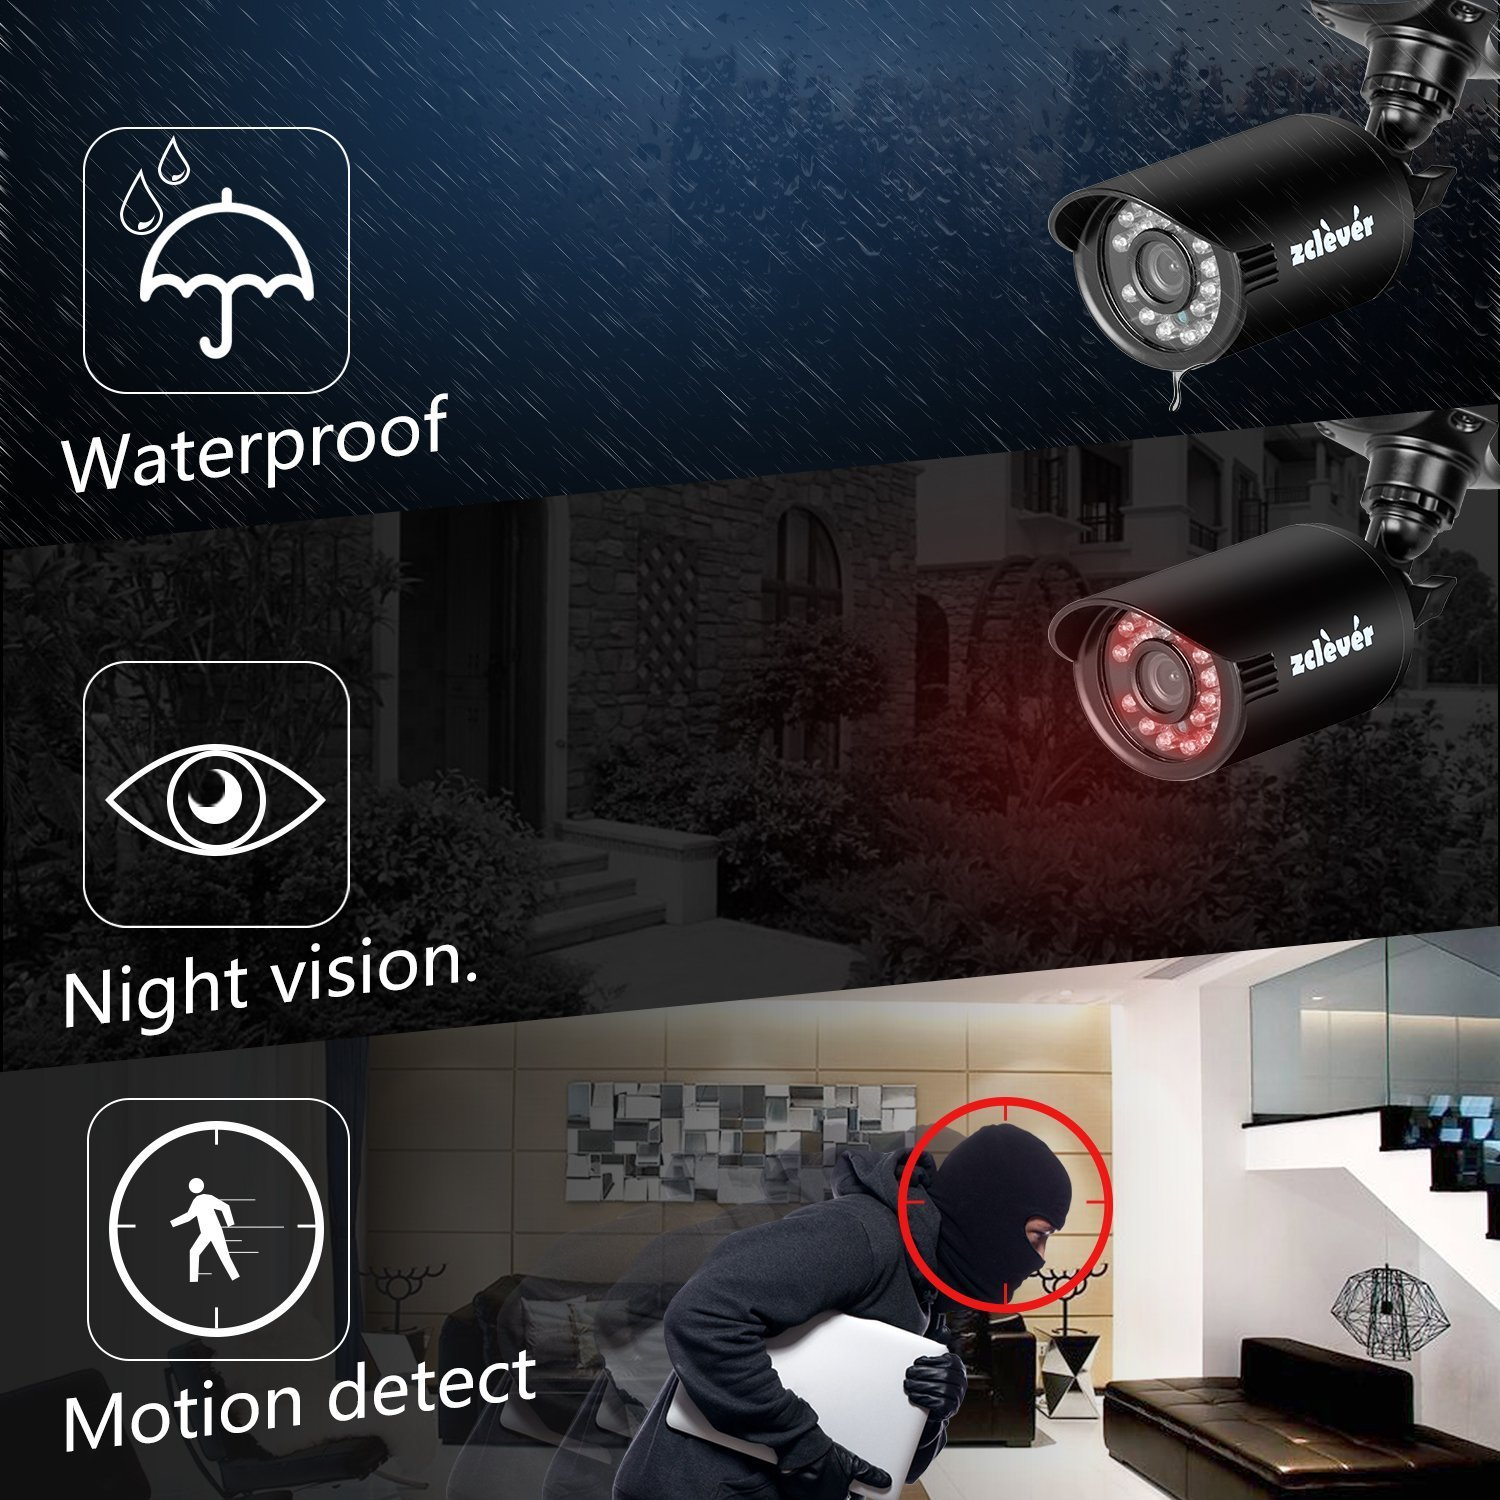 Zclever 8CH Home Security Camera System 1080N Video Surveillance DVR with 8pcs 720p 1200TVL Night Vision Weatherproof Cameras Motion Detection Easy Remote View No Hard Drive D2108N-8XC105L3